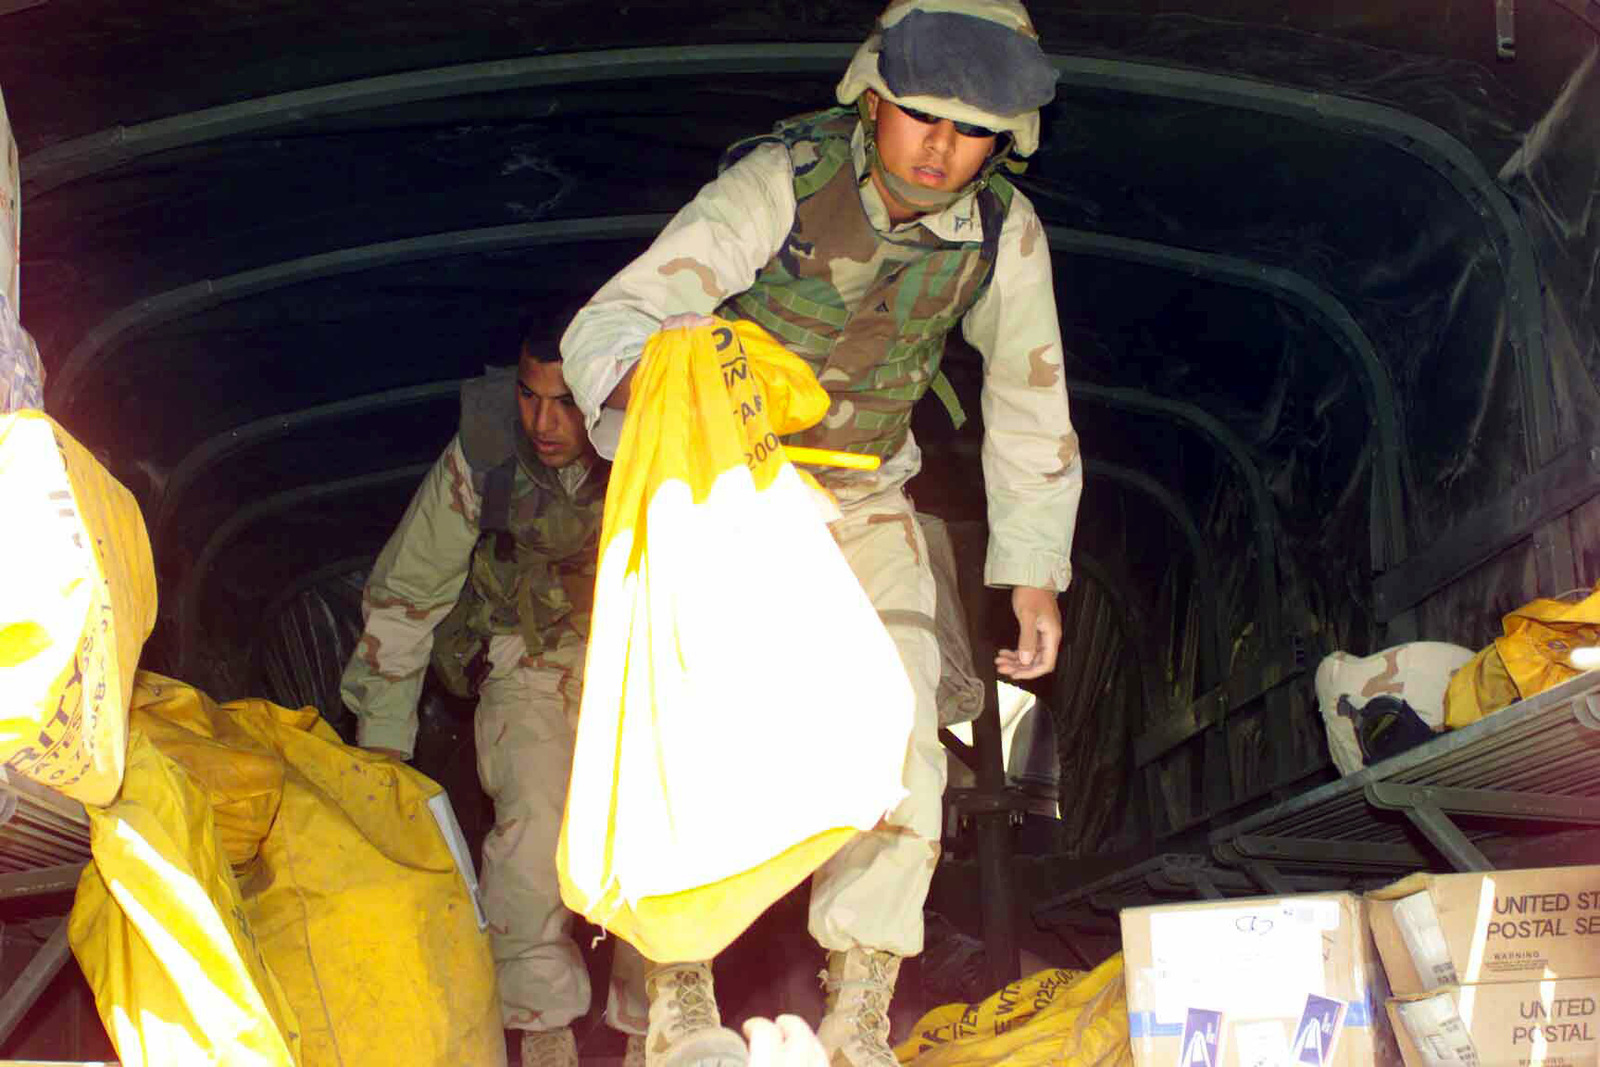 US Marine Corps (USMC) Postal Clerks from the 7th Marine Regiment, separate incoming mail by Battalion at Camp Coyote, Kuwait, during Operation ENDURING FREEDOM